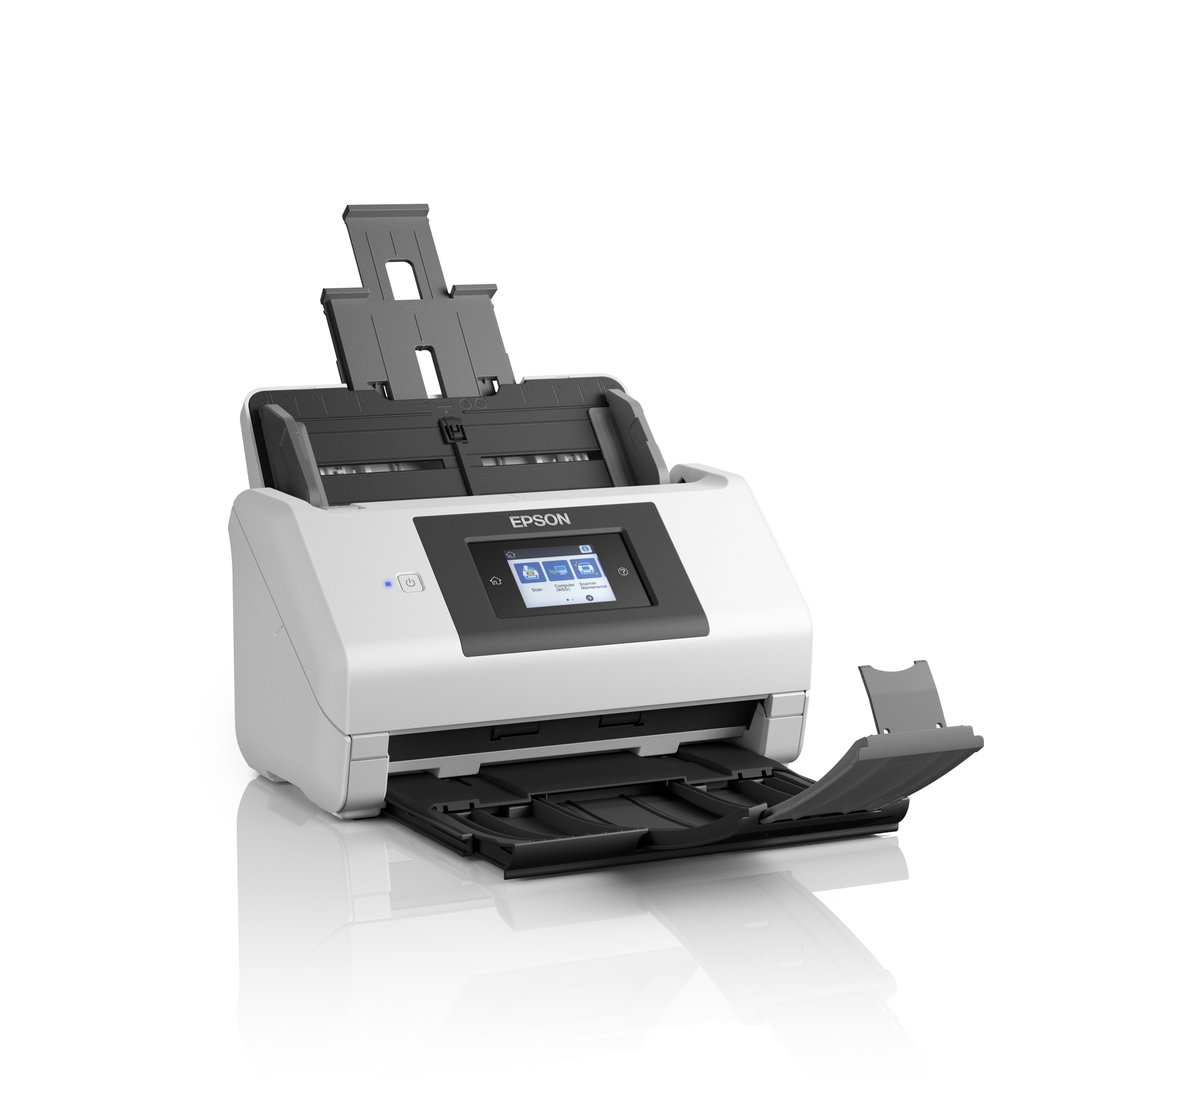 The secure and intelligent #Epson #Workforce #DS-780N is a compact network scanner that speeds up workflows by enabling users to rapidly scan and share documents over a network. Click the link to find out more!